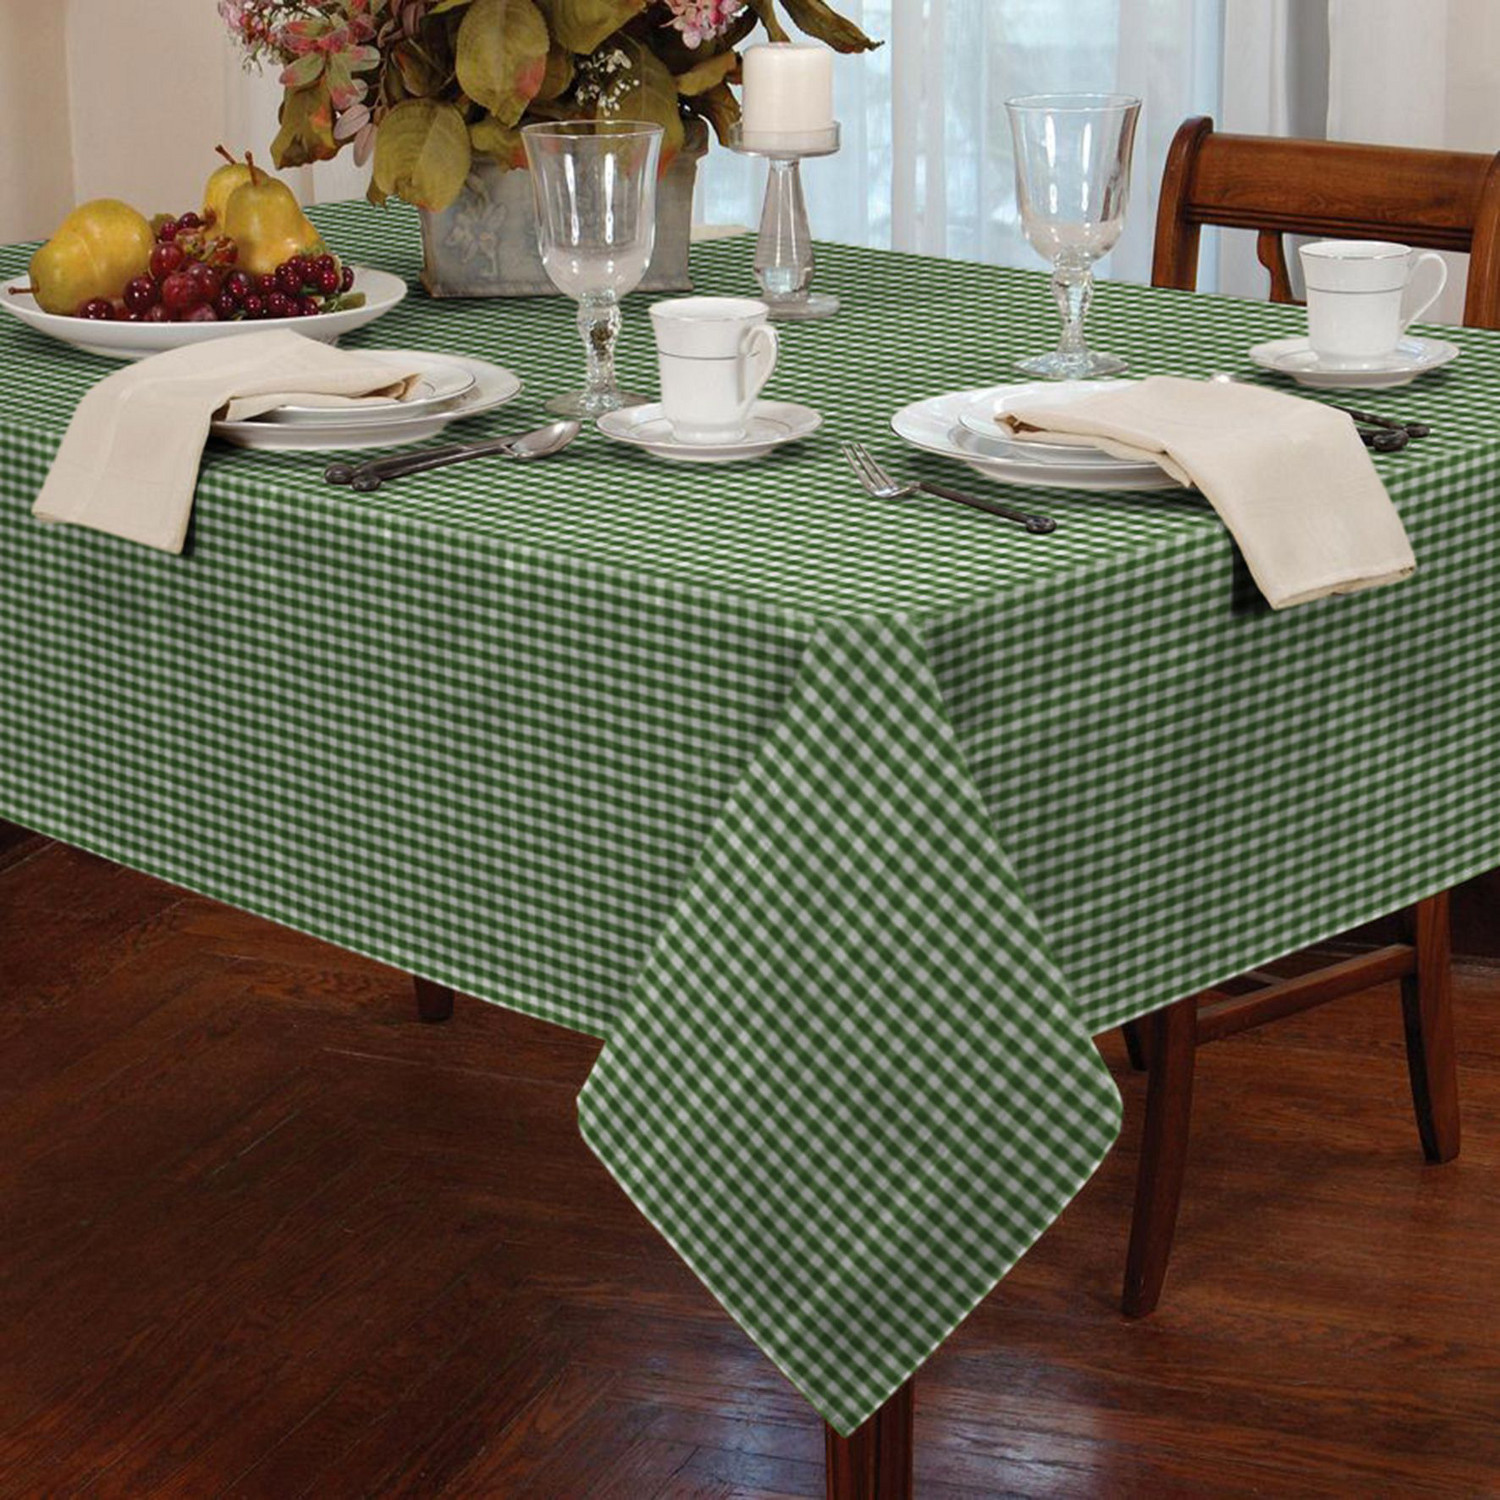 Tablecloth Traditional Gingham Check Round Square Oblong Kitchen ...